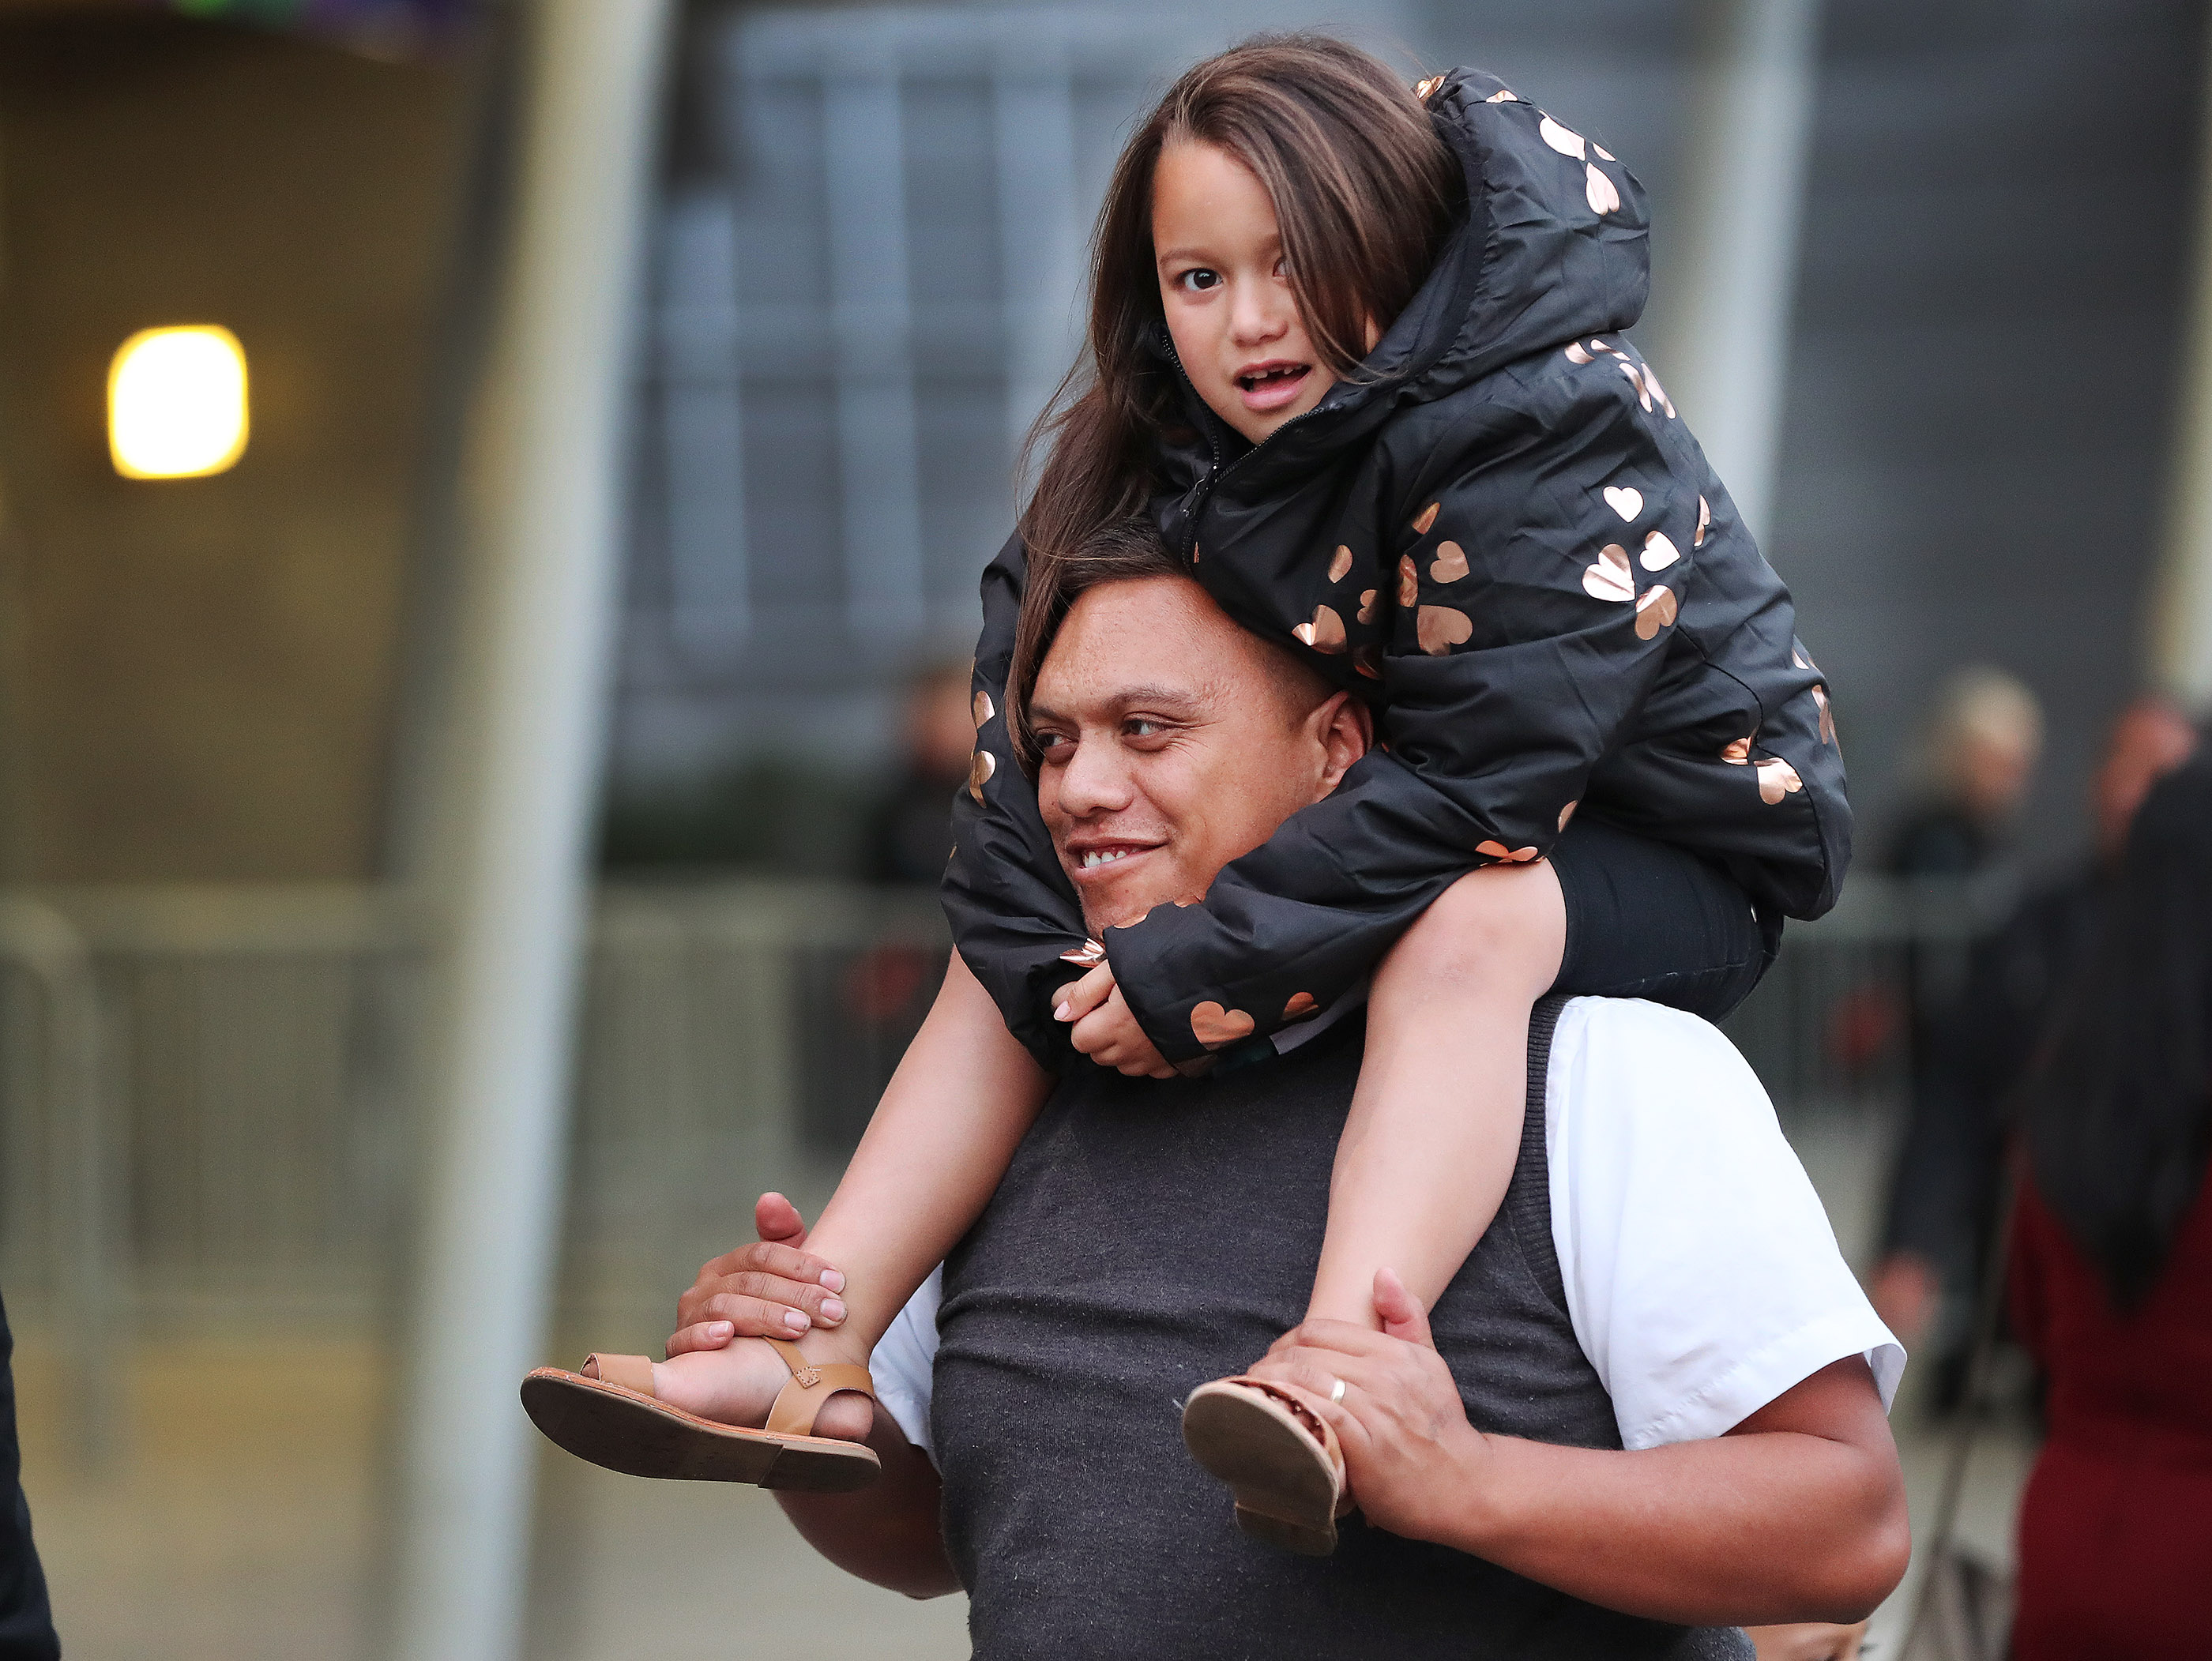 Manga Aperahama waits with his daughter Kaainga prior to a devotional with President Russell M. Nelson of The Church of Jesus Christ of Latter-day Saints in Auckland, New Zealand, on May 21, 2019.